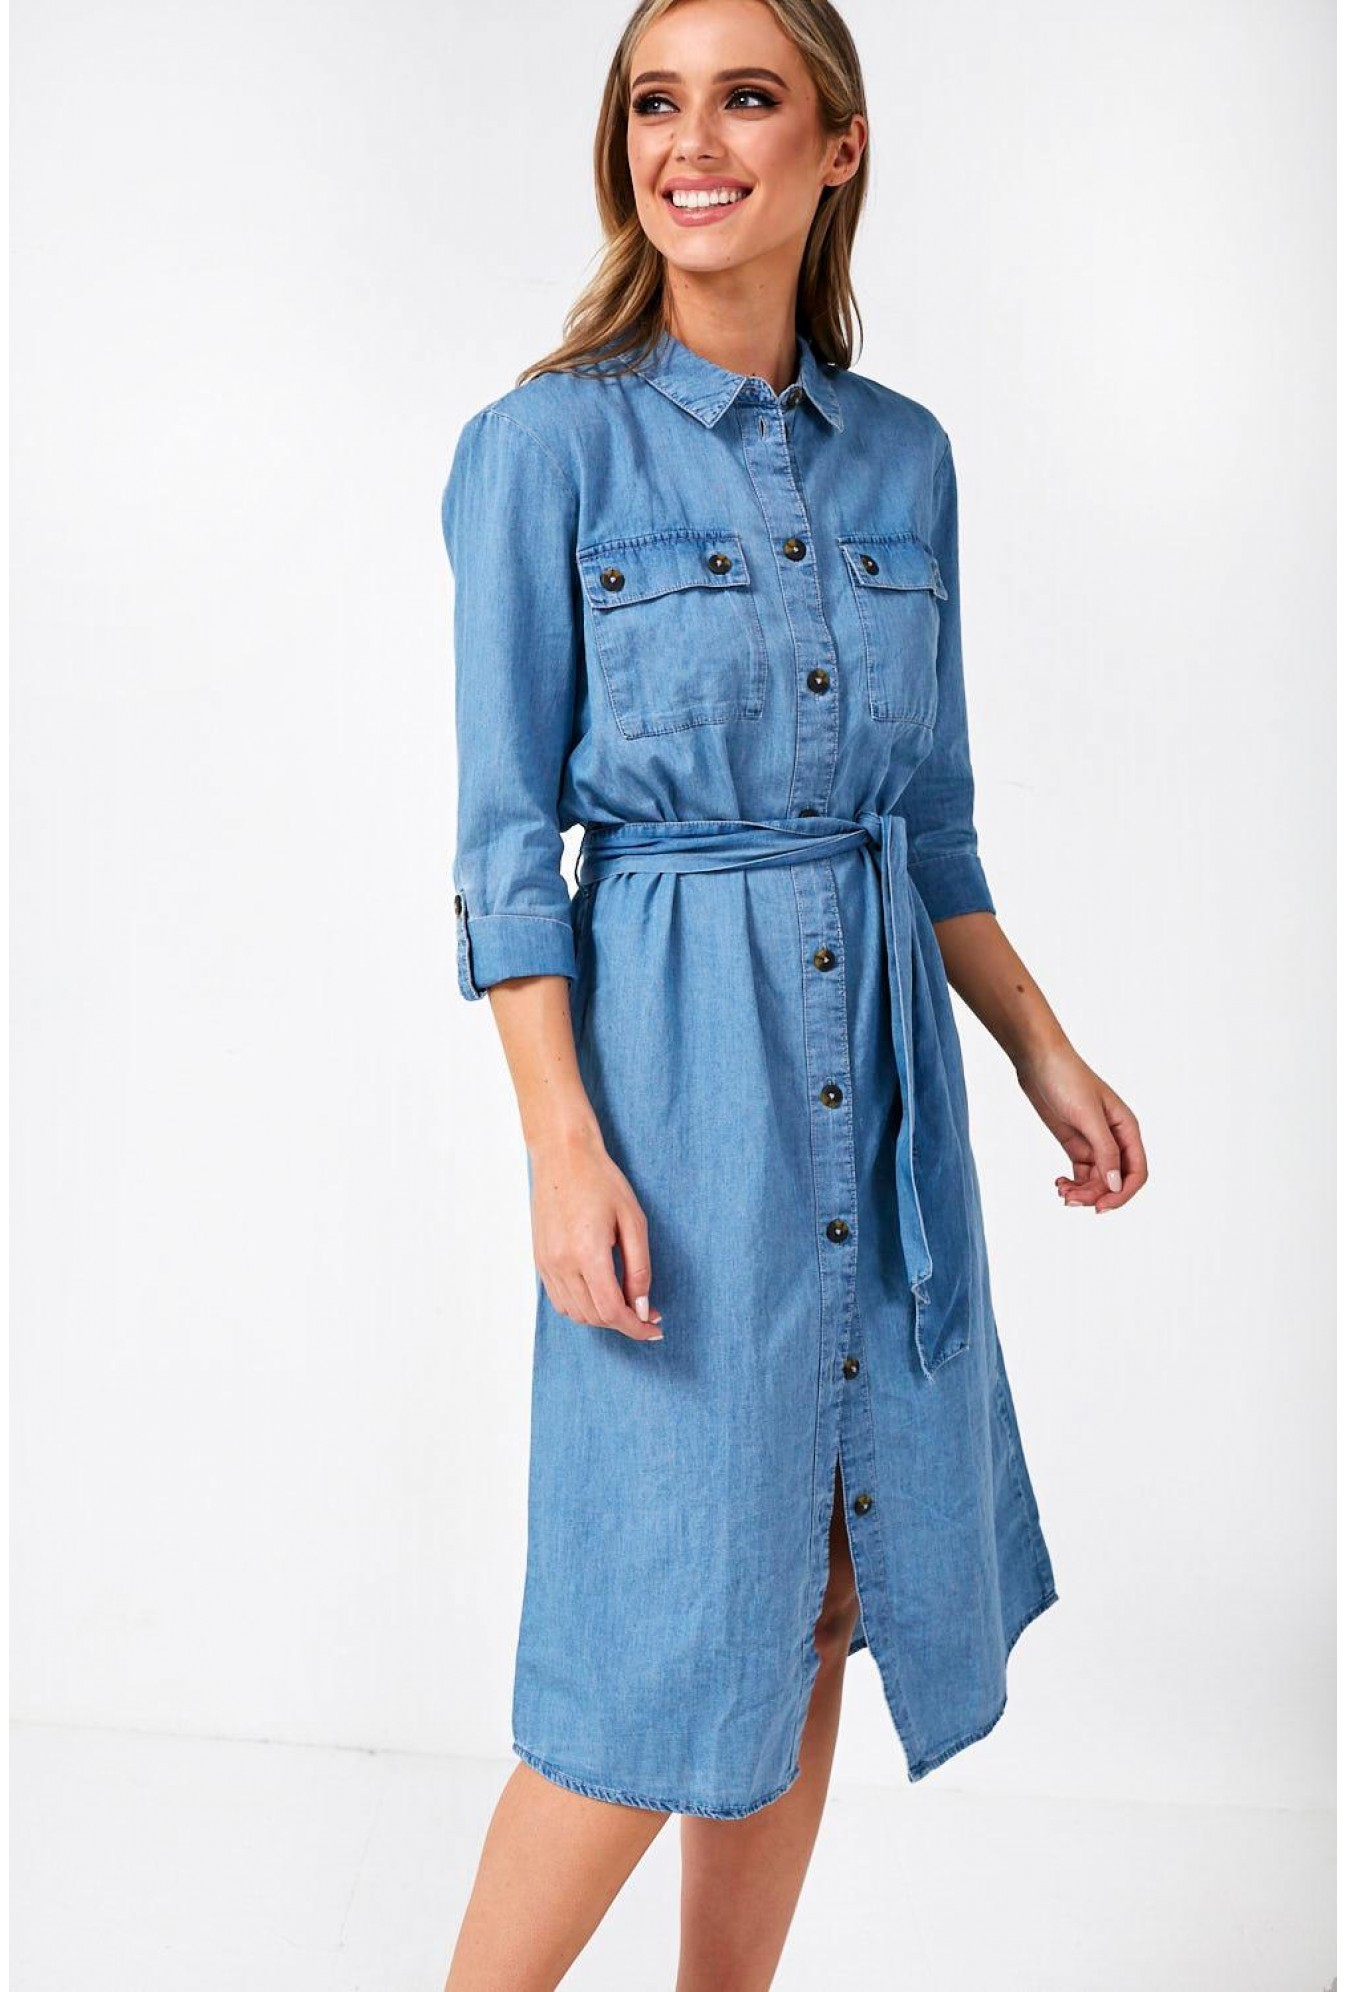 0775059b33c JDY Paige Denim Shirt Dress in Light Blue | iCLOTHING